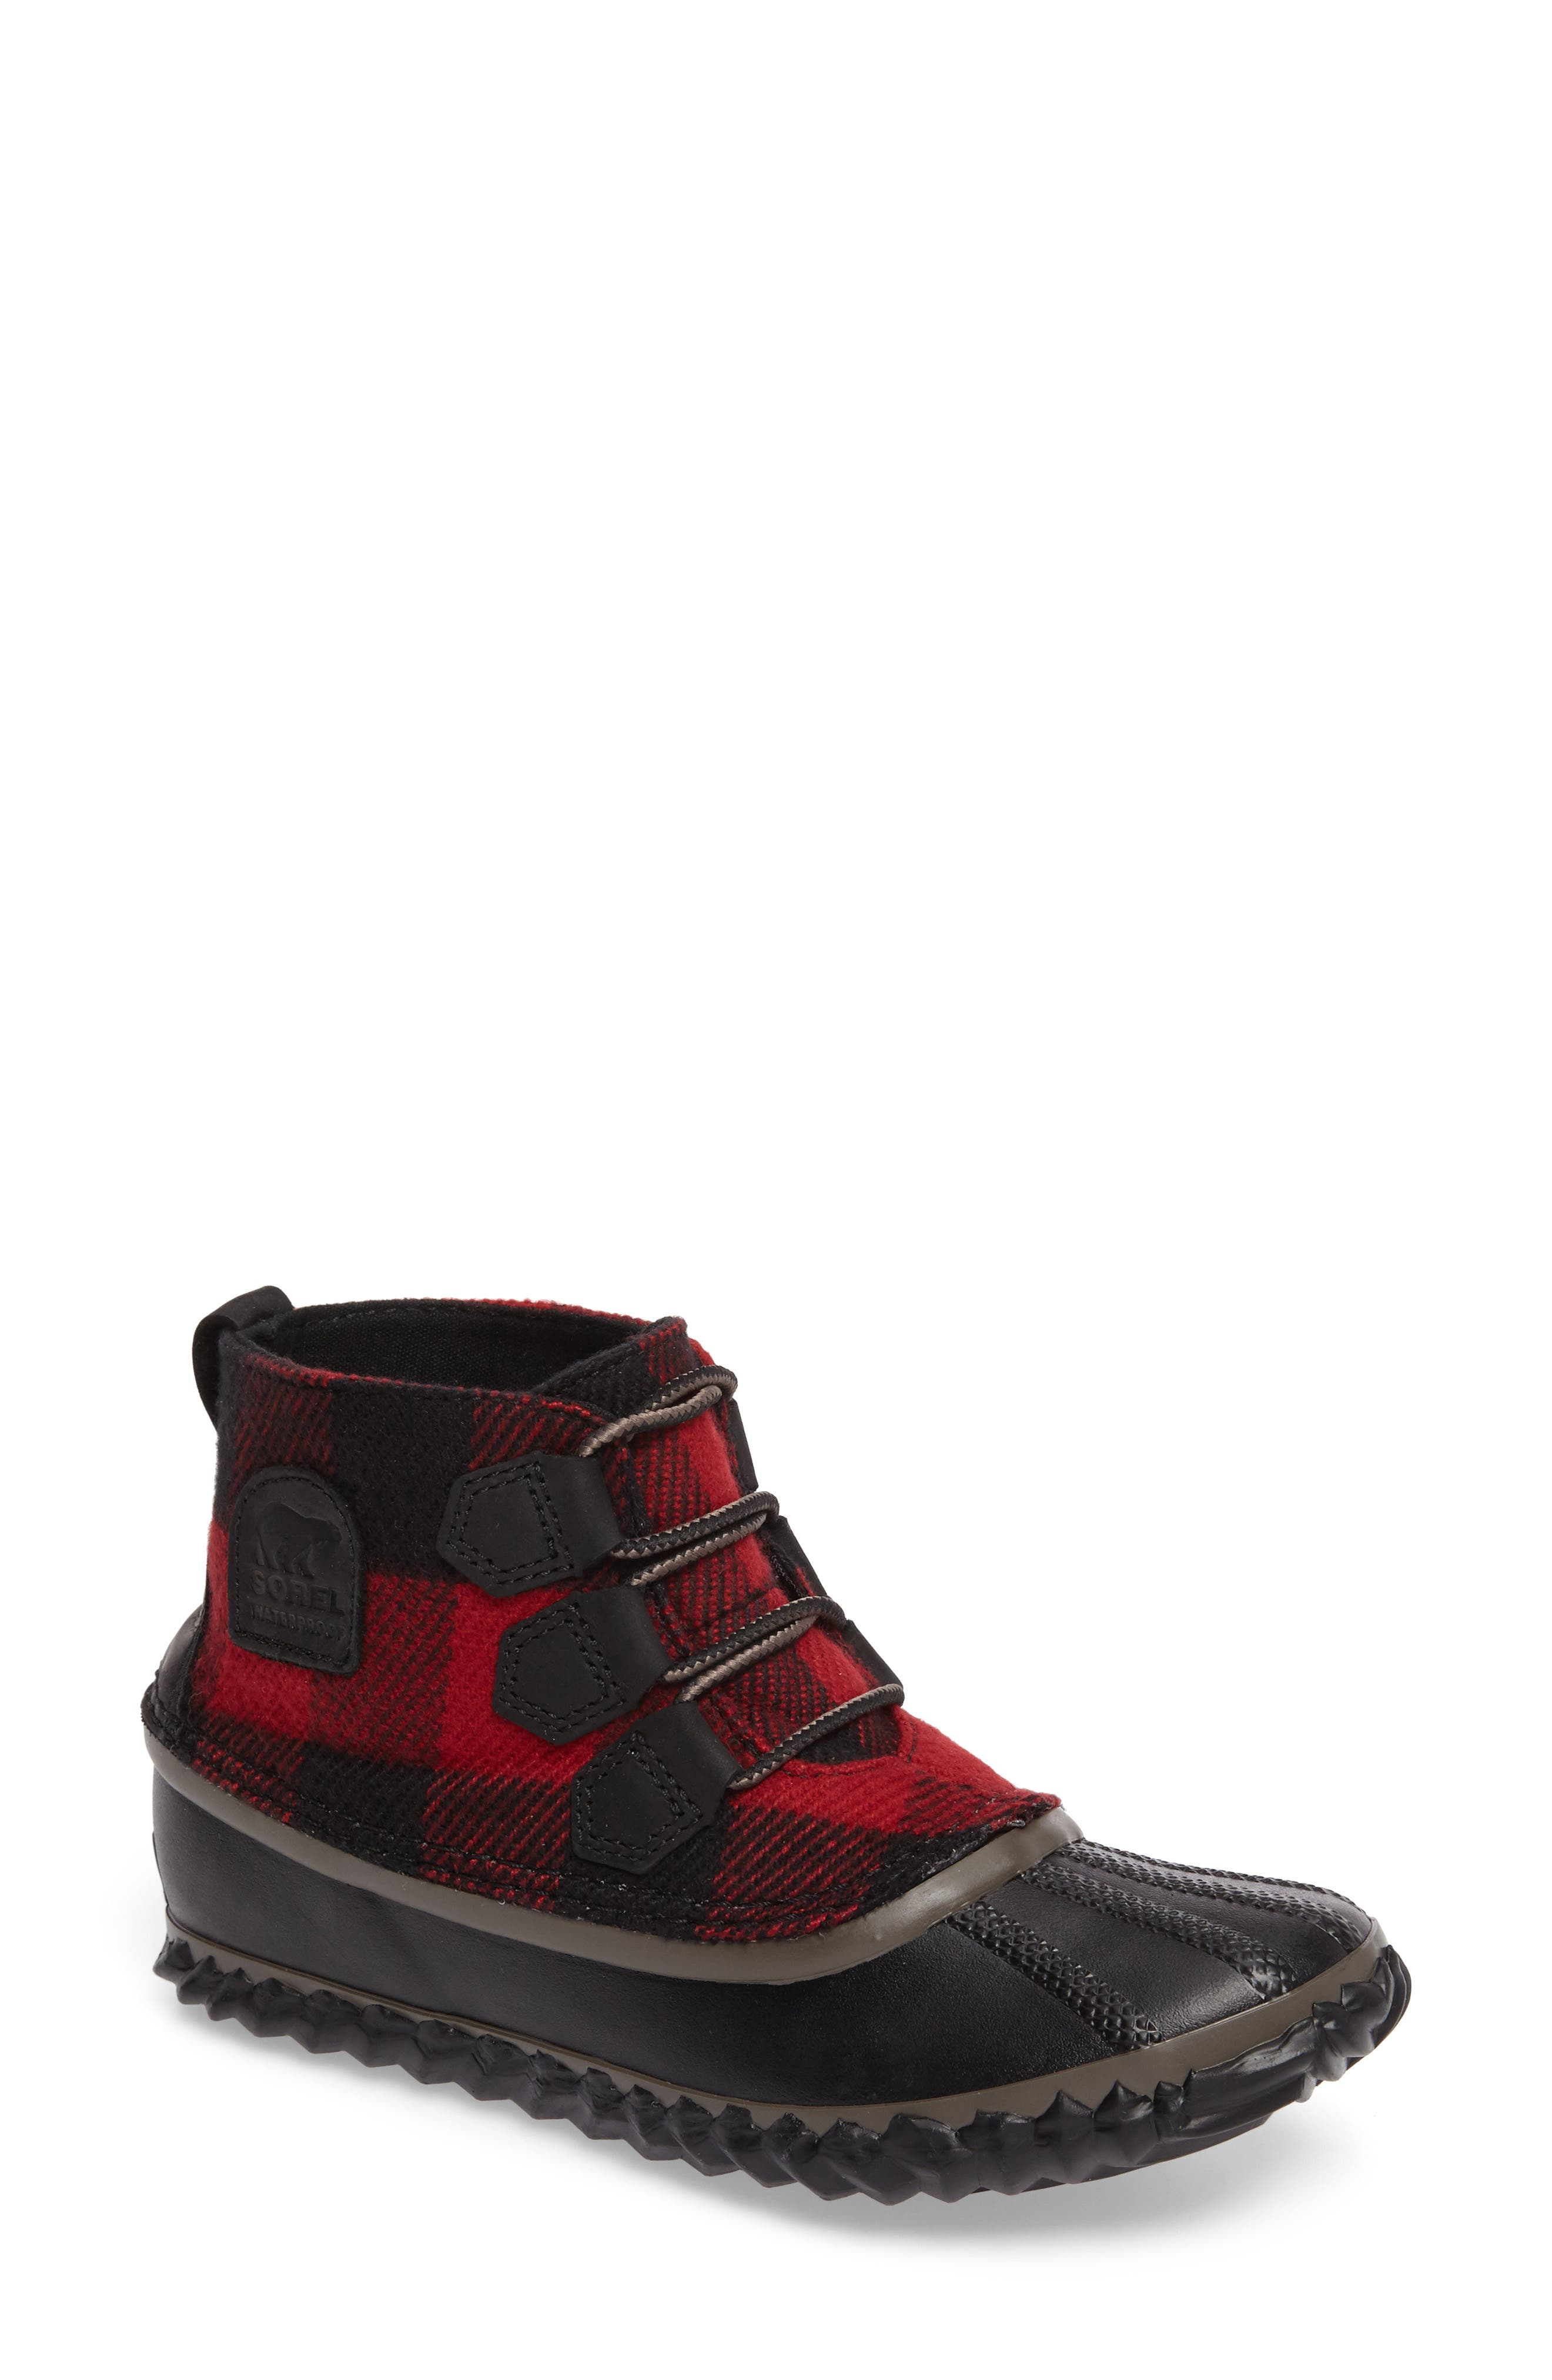 Alternate Image 1 Selected - SOREL 'Out N About' Leather Boot (Women)